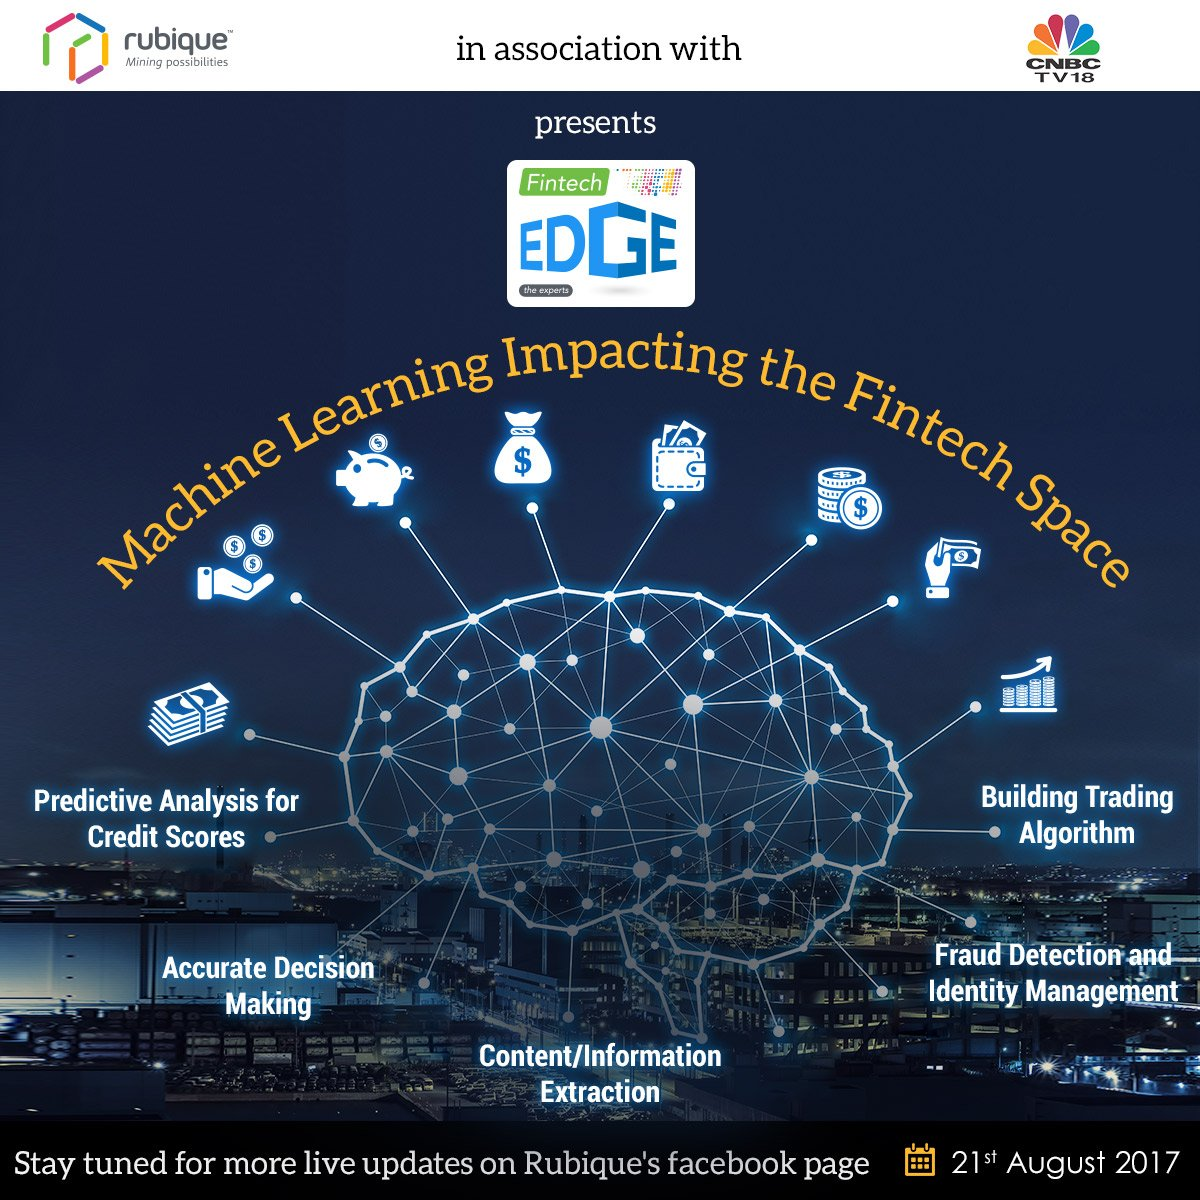 #MachineLearning on #Fintech. #StayTuned for such insights of the Fintech world at #FintechEdge coming on 21st Aug&#39;17. #CNBCTV18 #Rubique<br>http://pic.twitter.com/zdtNlSSsQm